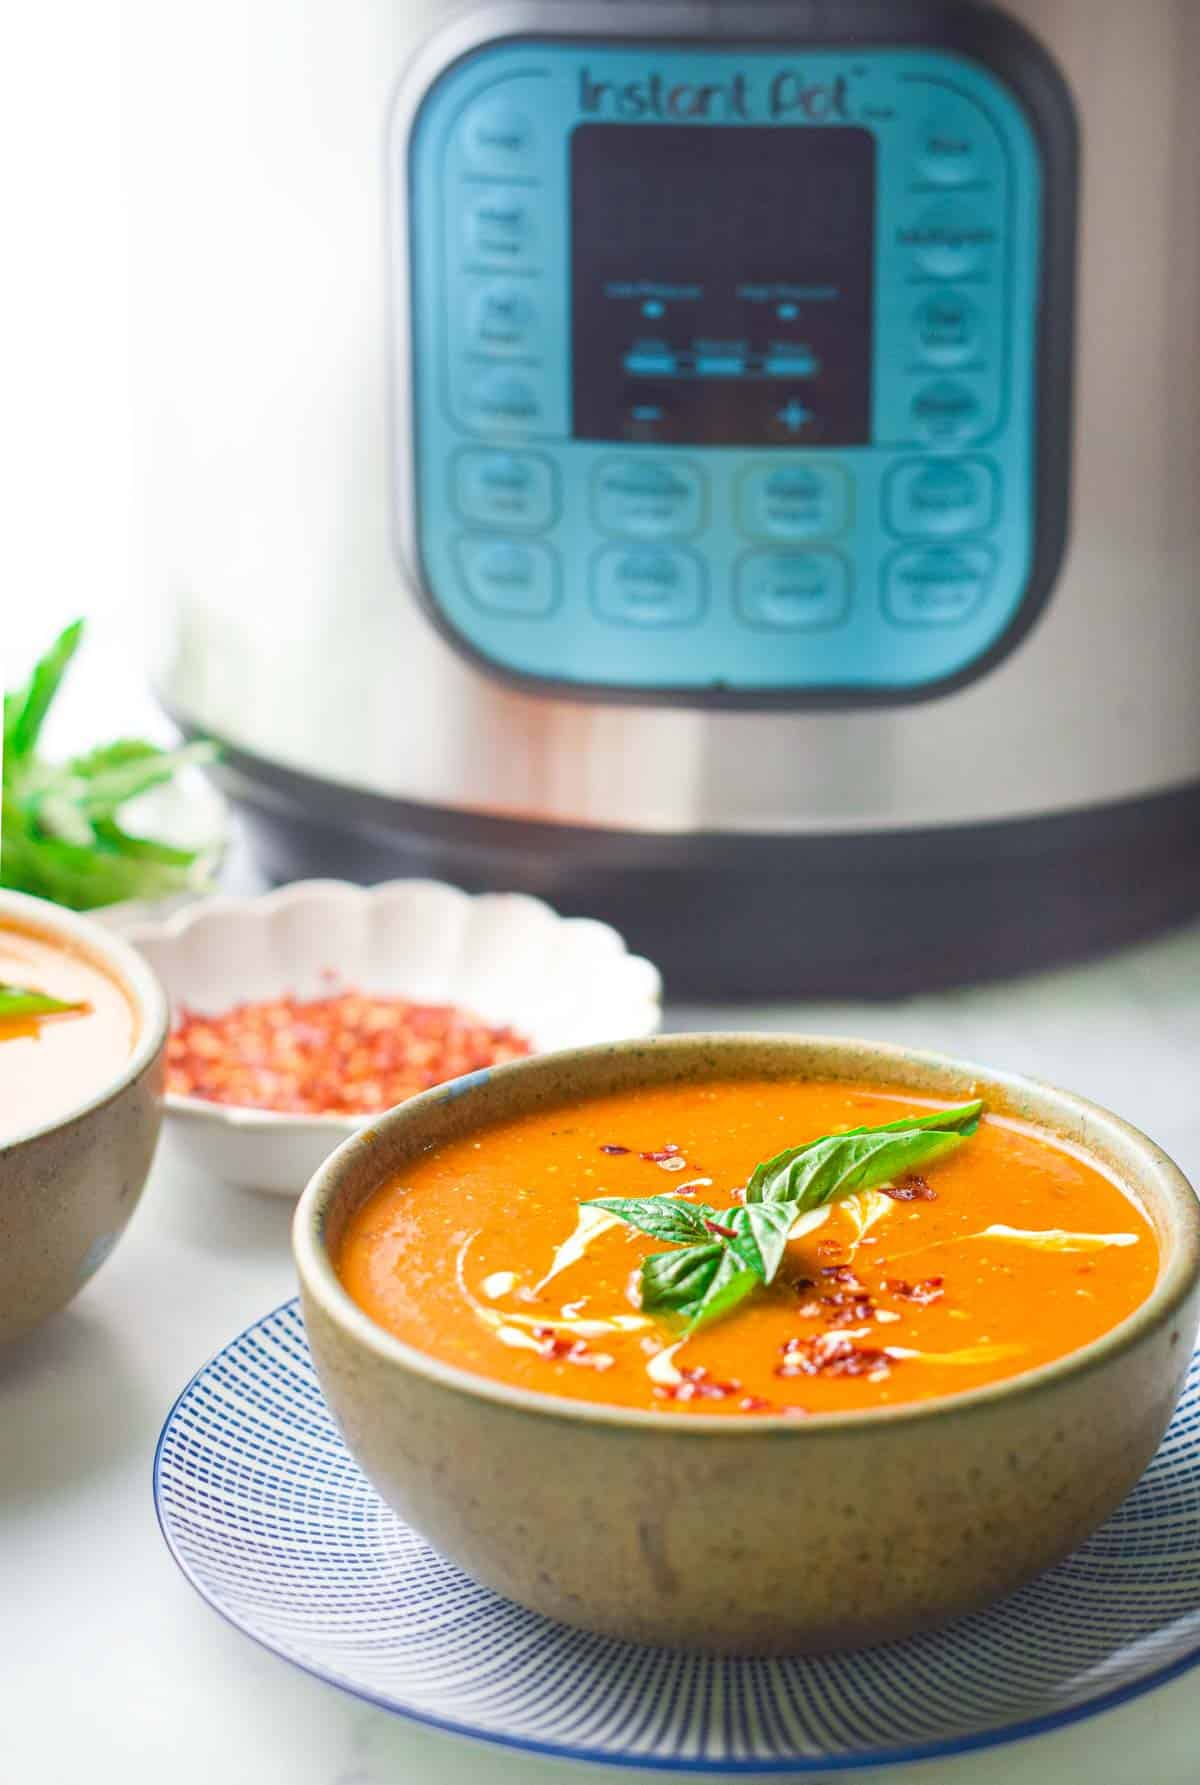 a bowl of tomato basil soup garnished with a drizzle of cream and a small bowl of chili flakes next to an instant pot